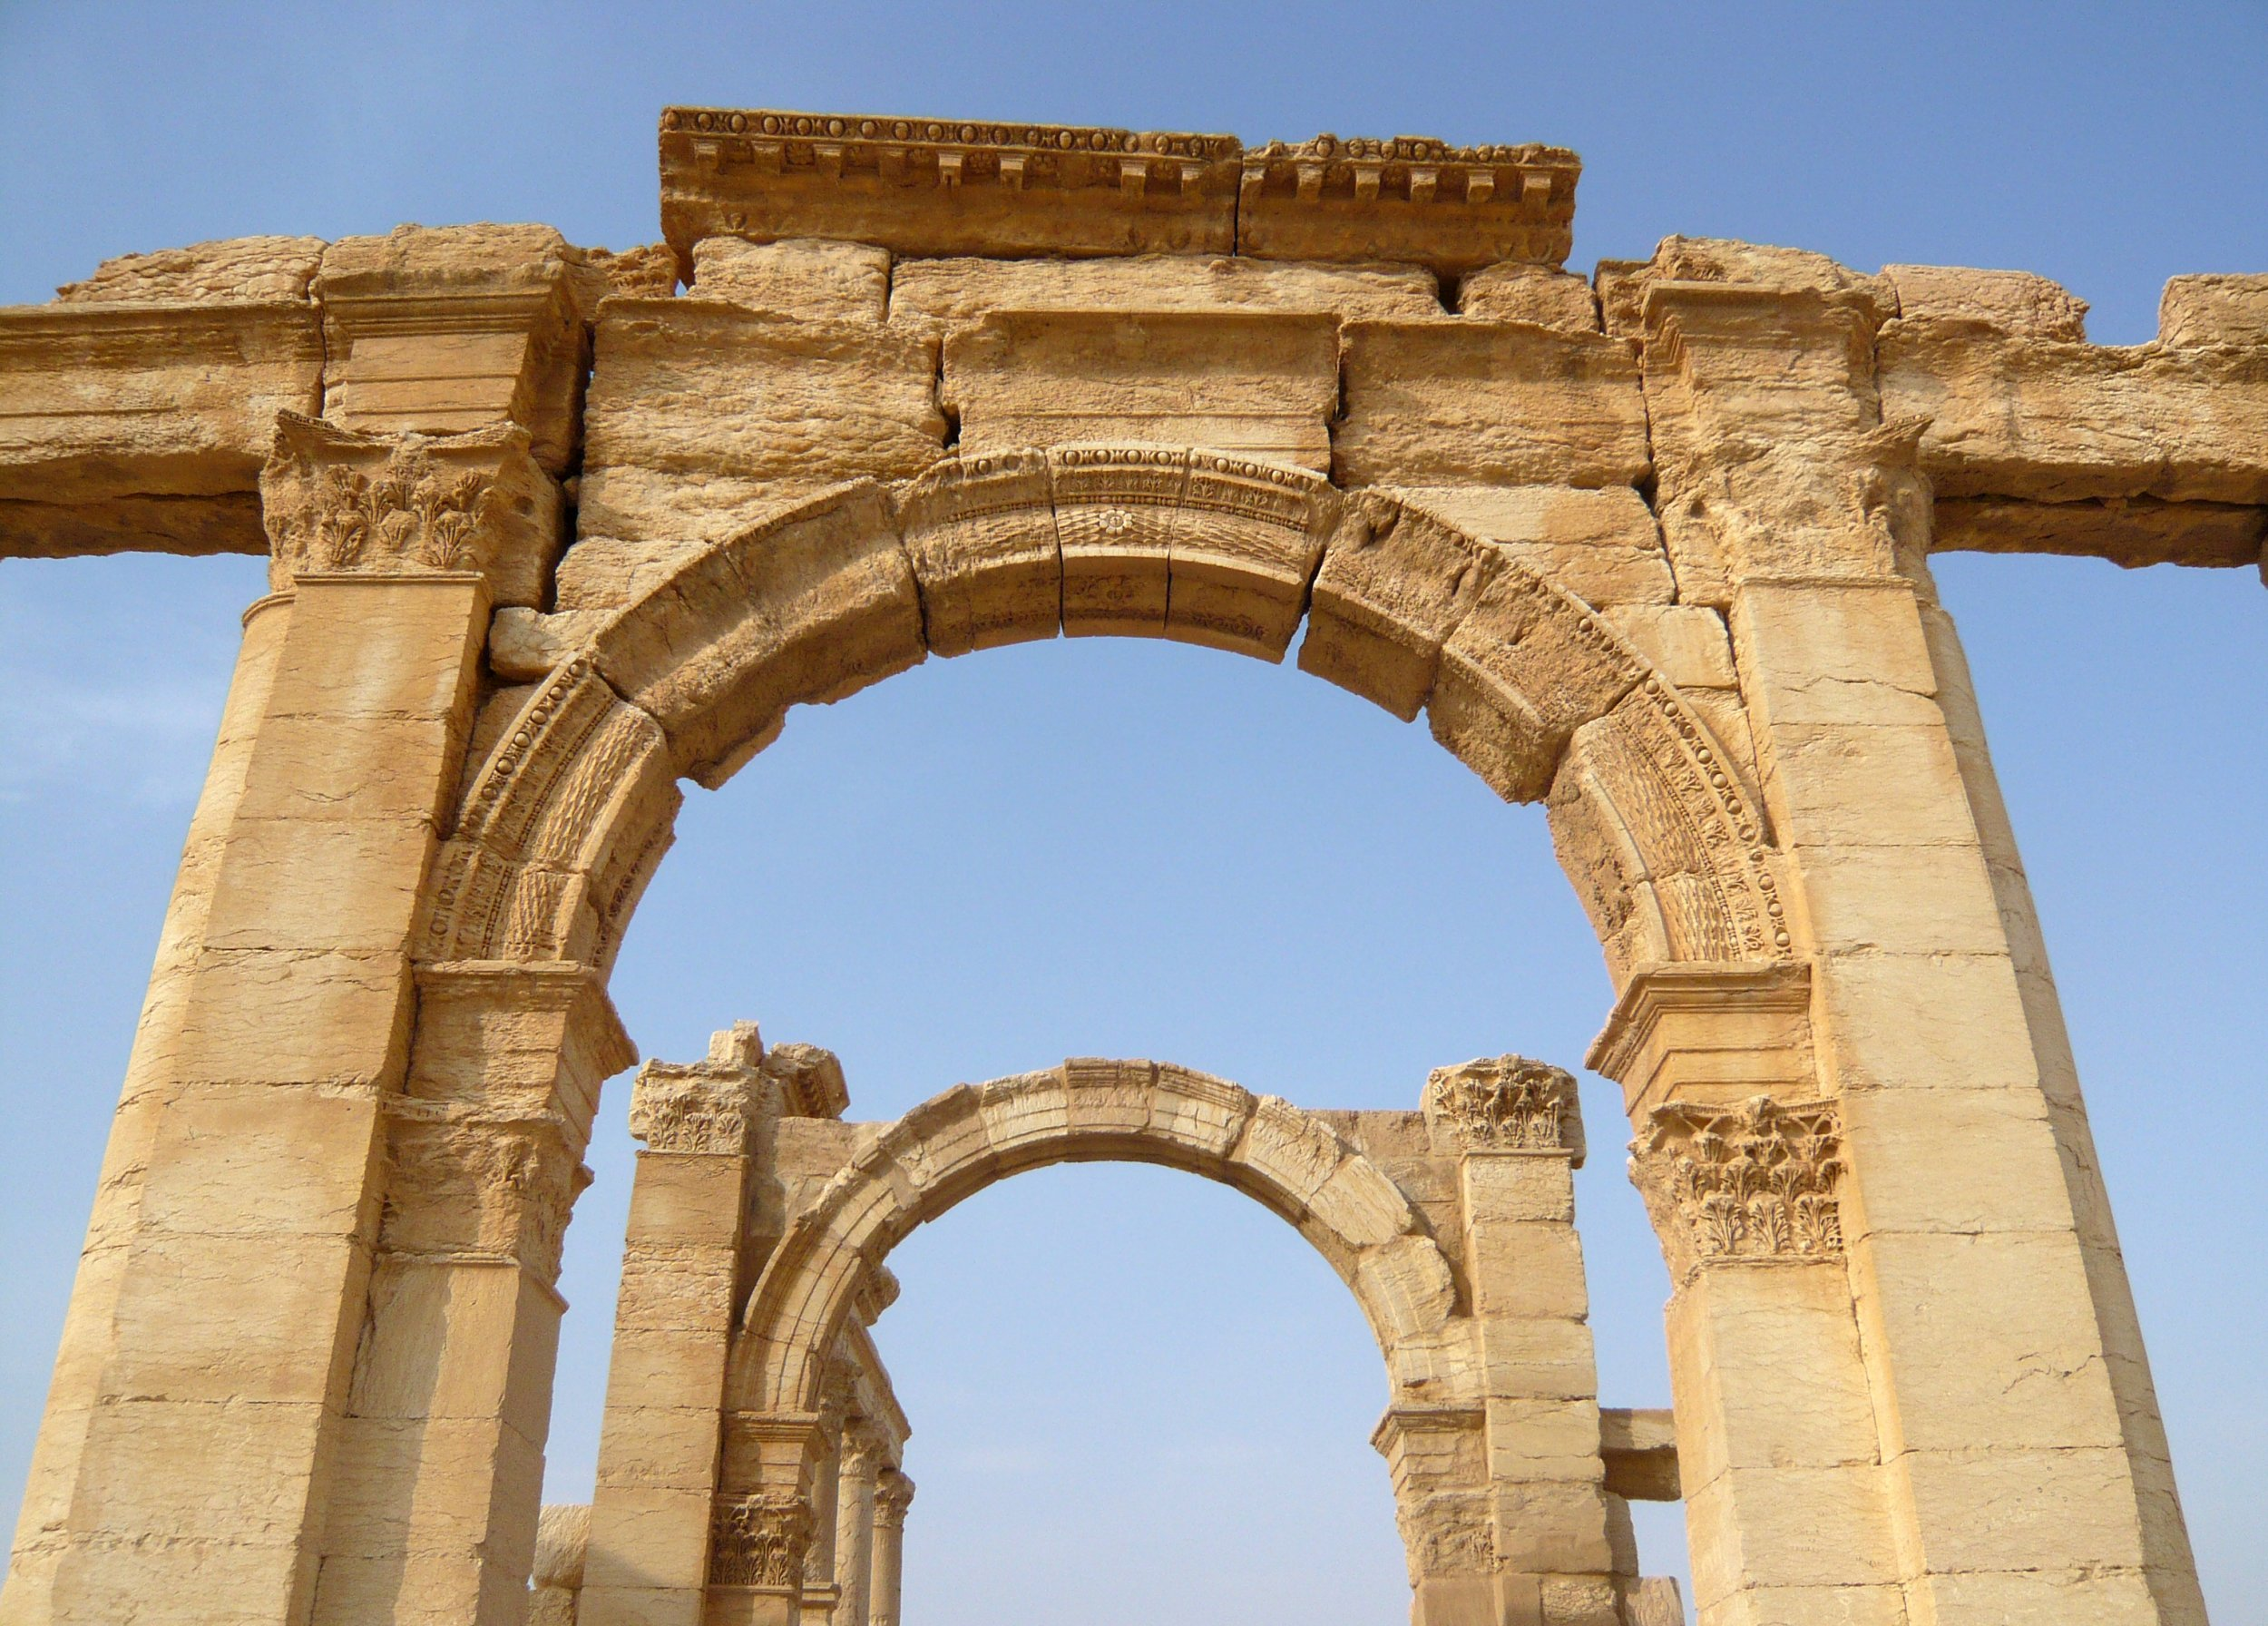 Arch in Palmyra